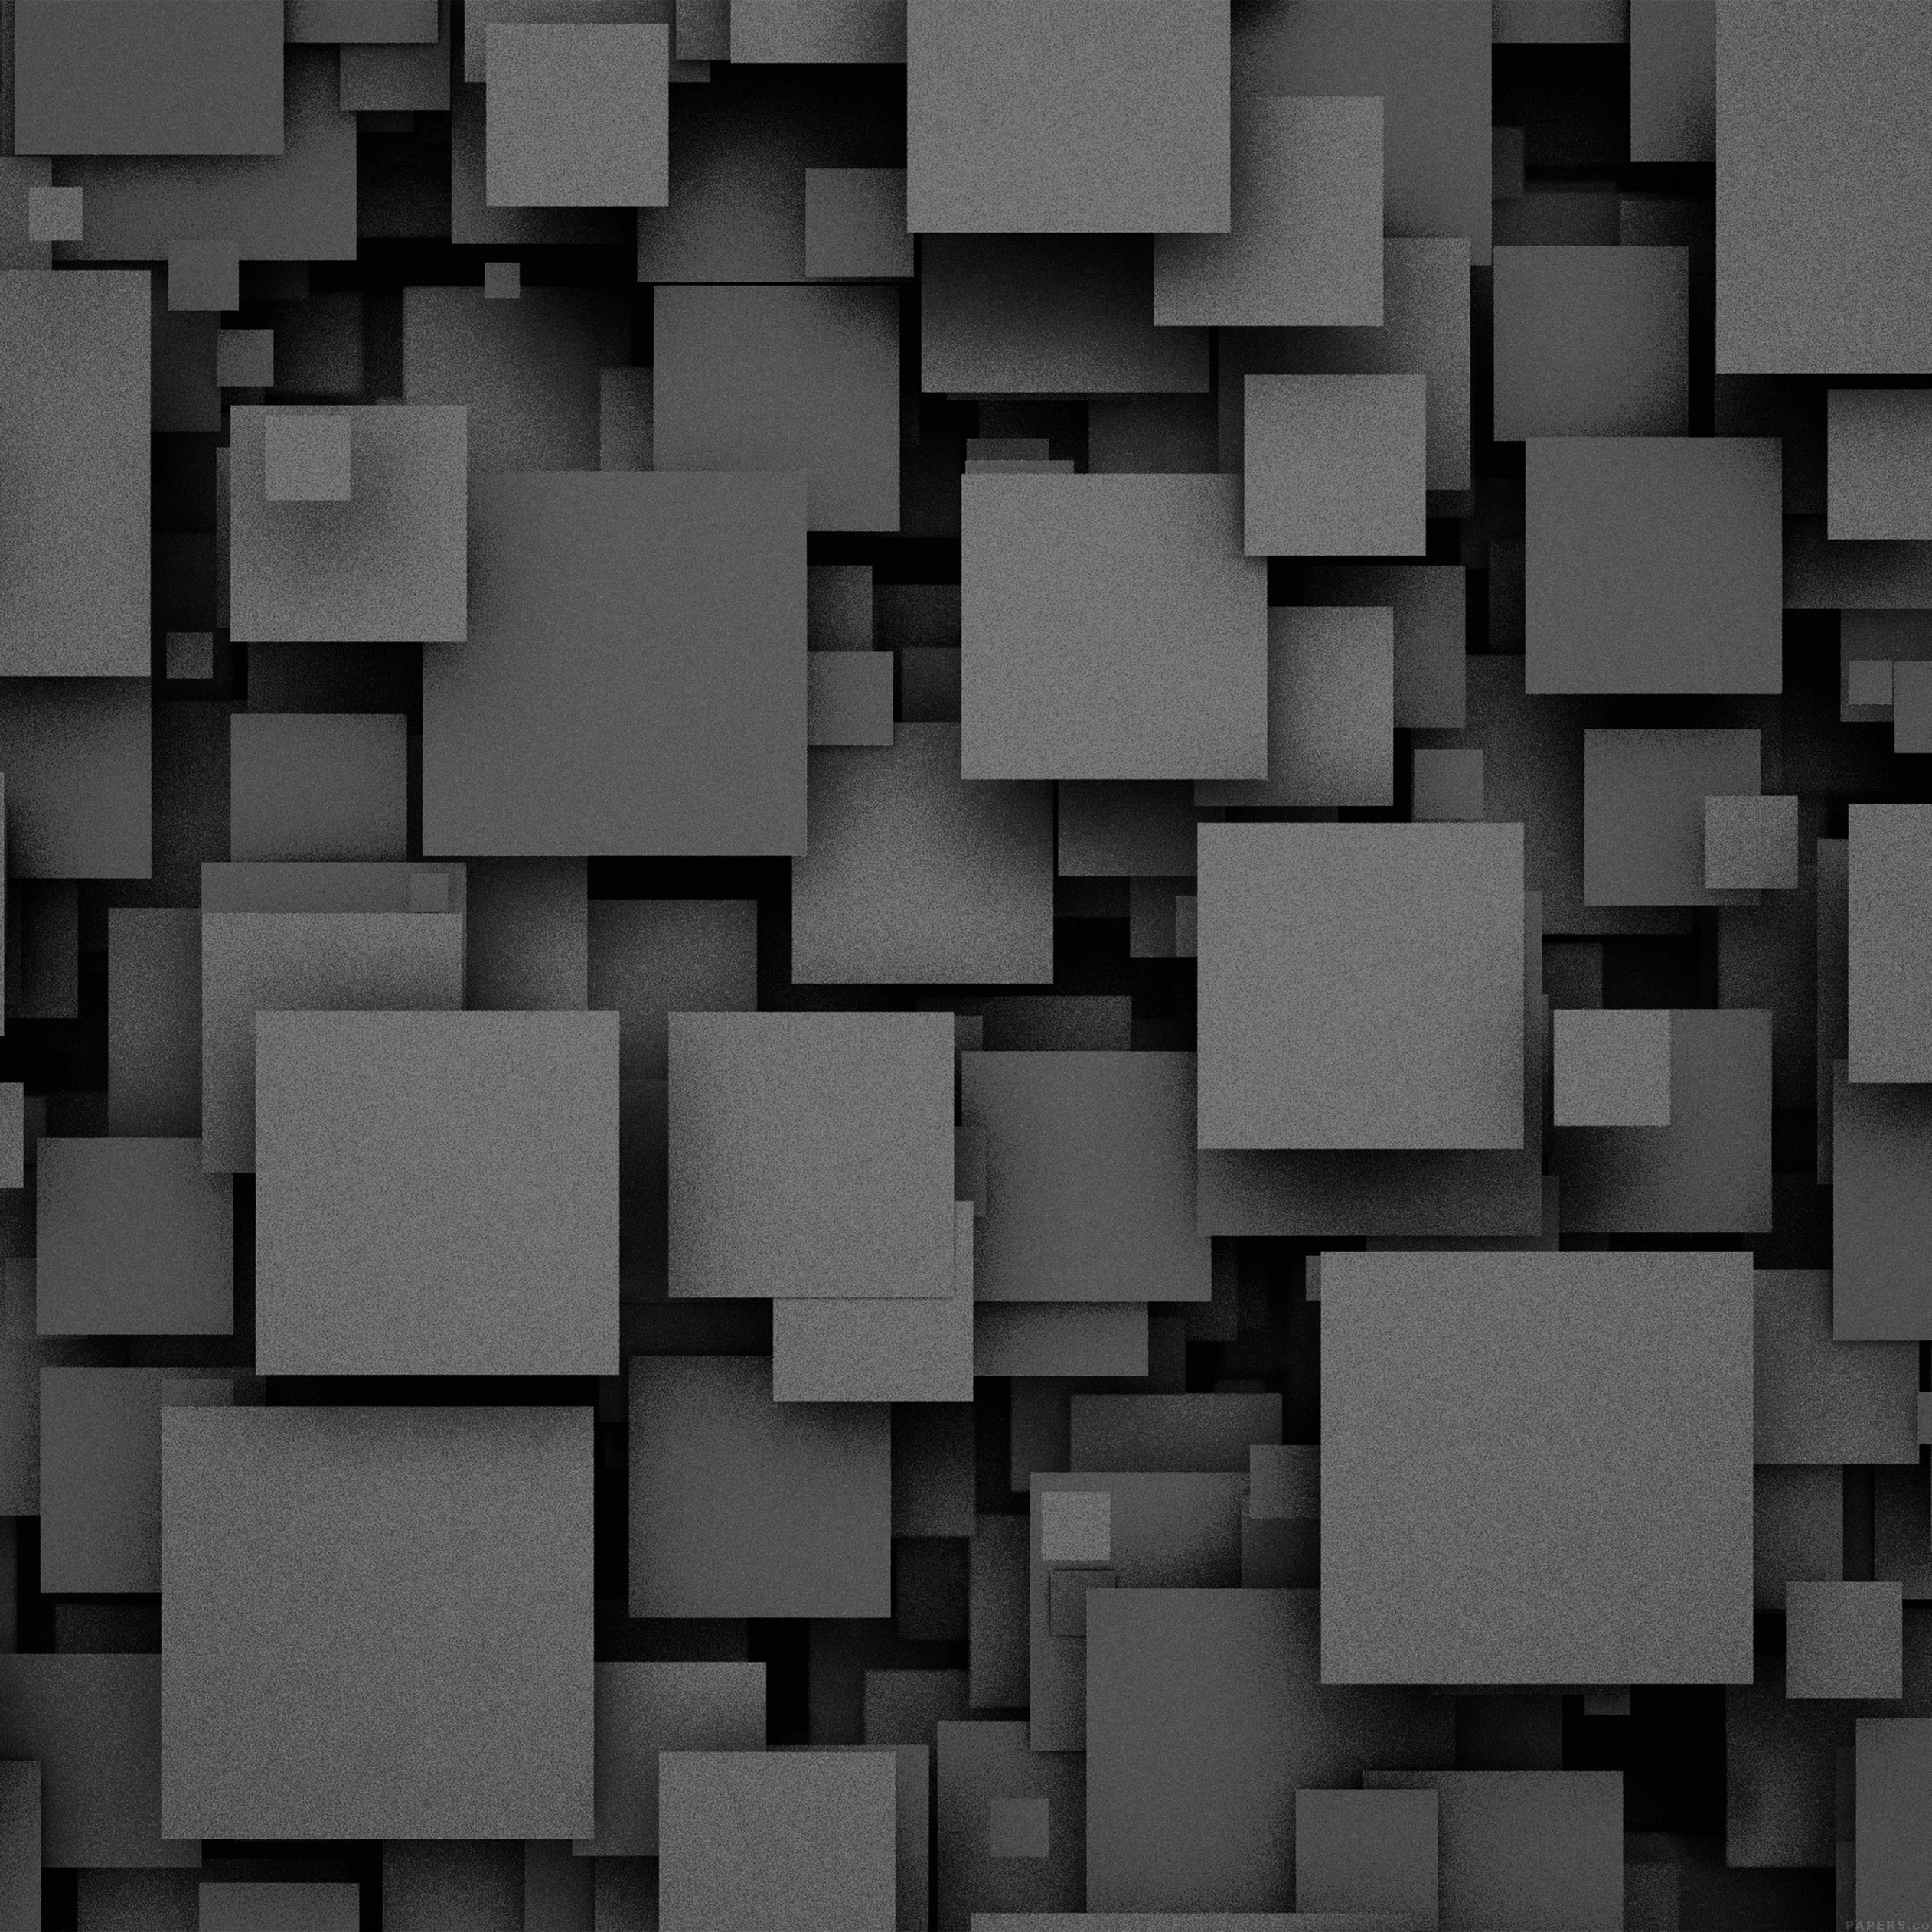 square-party-dark-bw-pattern-9-wallpaper